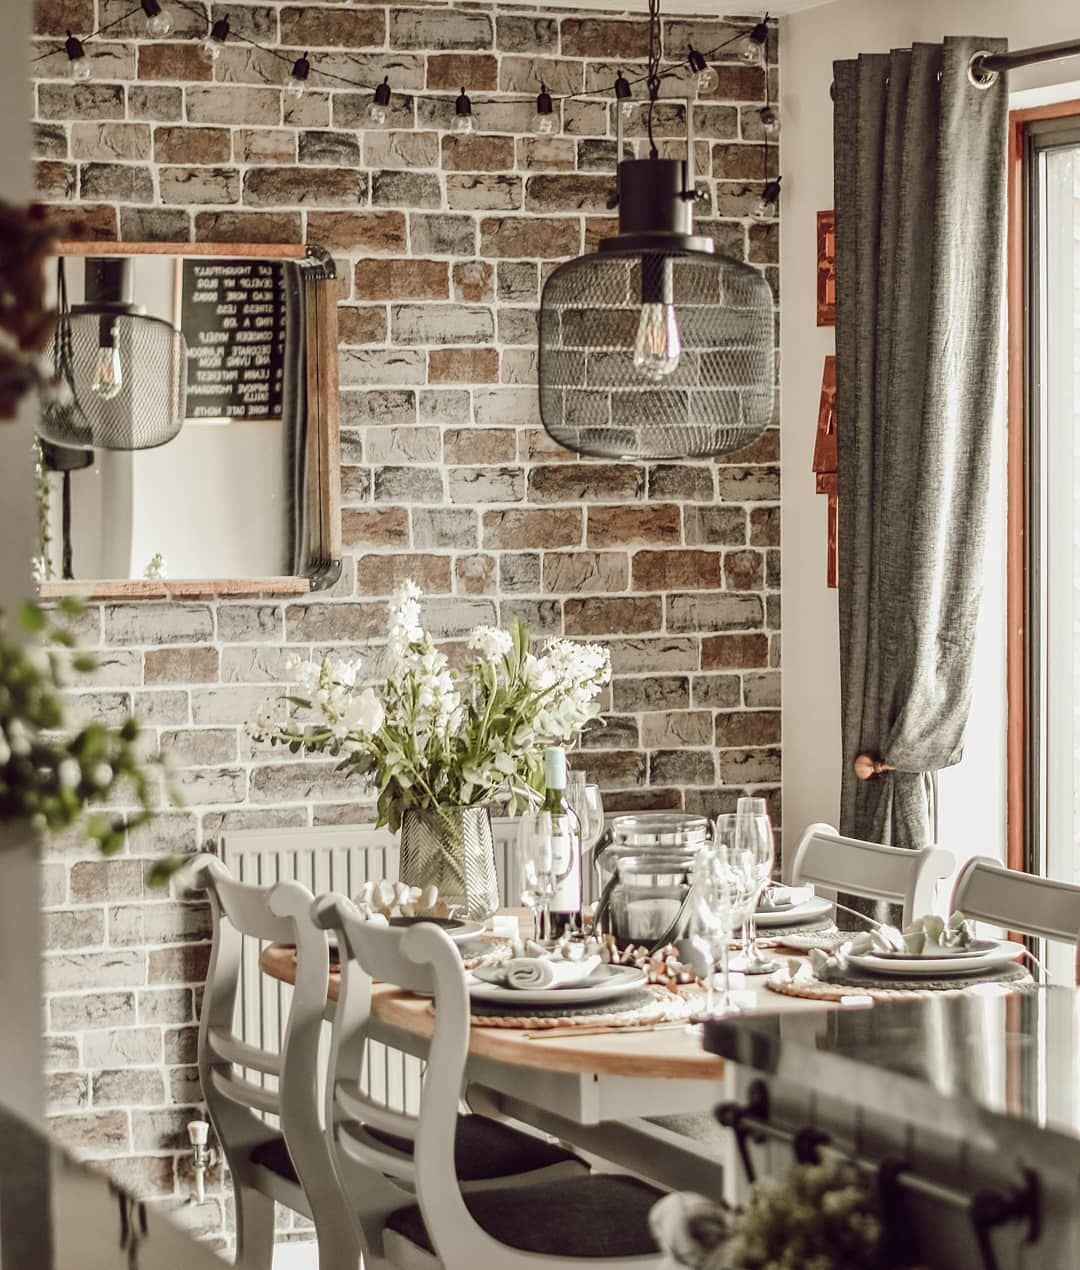 Kitchen Diner Renovation With Shaker Kitchen Cupboards And Industrial Dining Vibe Create Brick Wallpaper Dining Room Brick Wallpaper Kitchen Rustic Dining Room